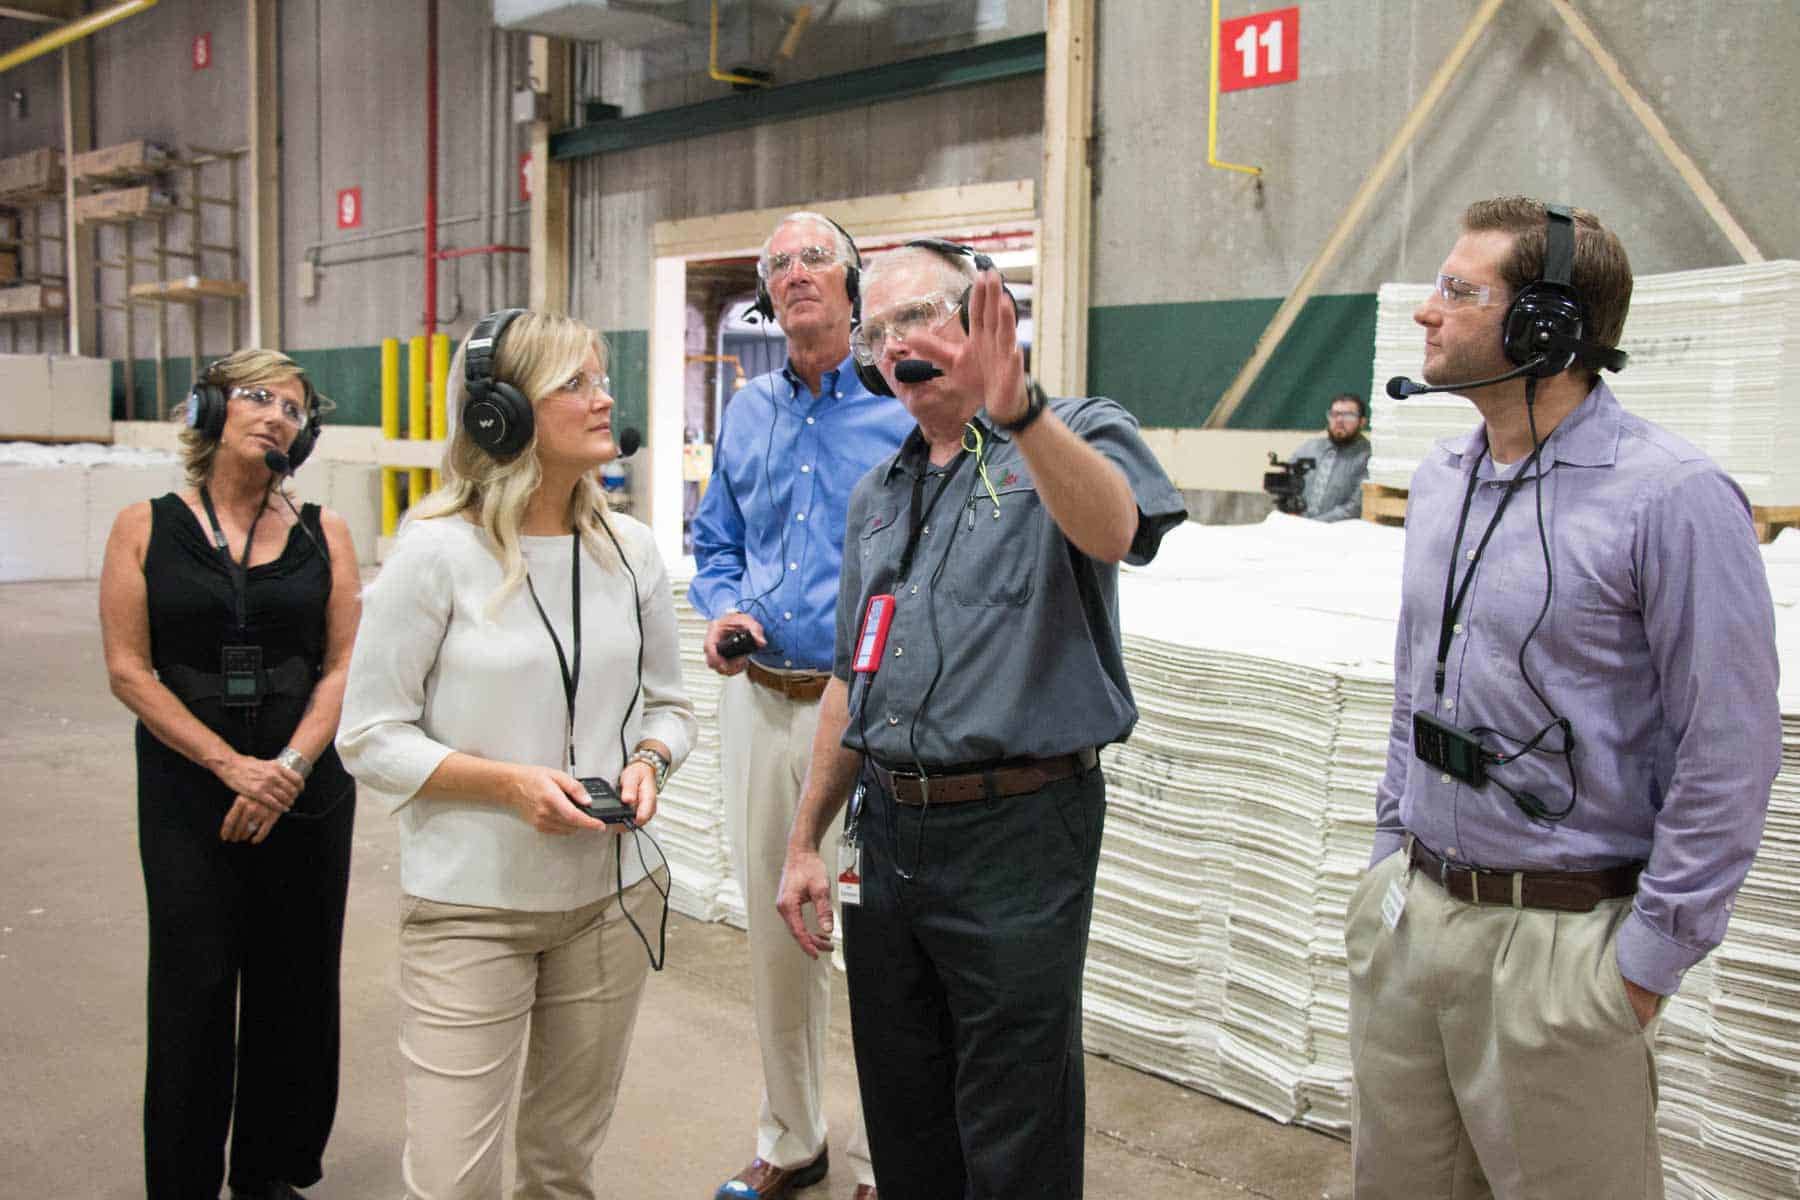 Factory Tour Headsets Provide Effective Group Audio Solutions